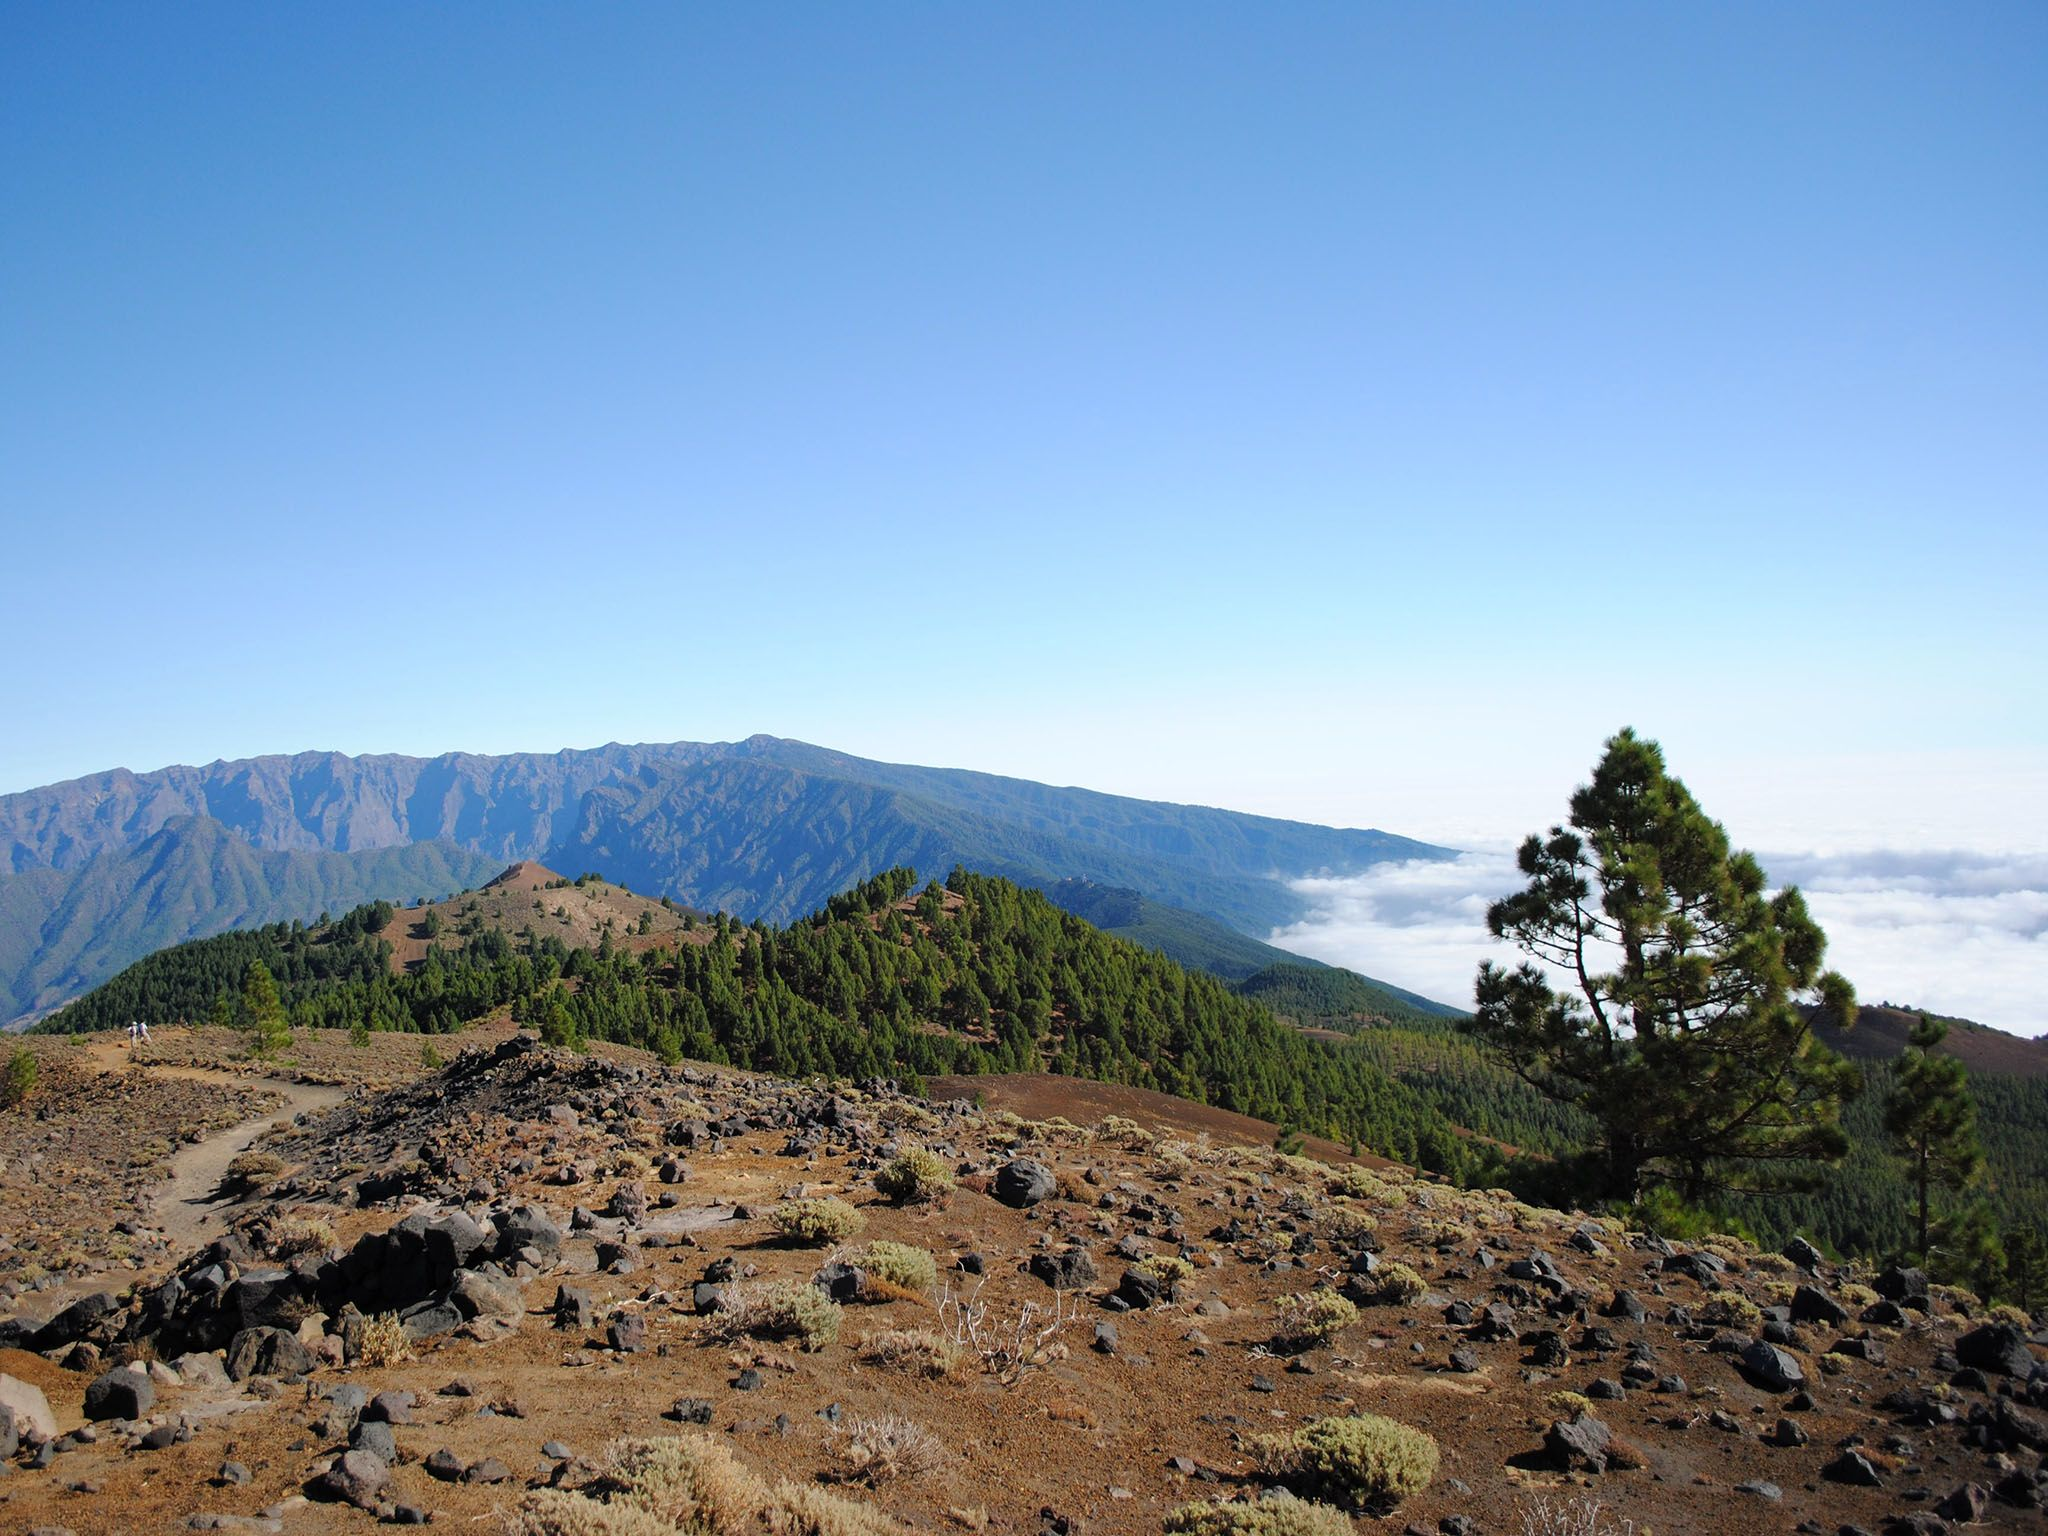 La Palma, Canary Islands, Spain: North facing view of La Palma island, from Cumbre Veija facing... [Photo of the day - October 2016]